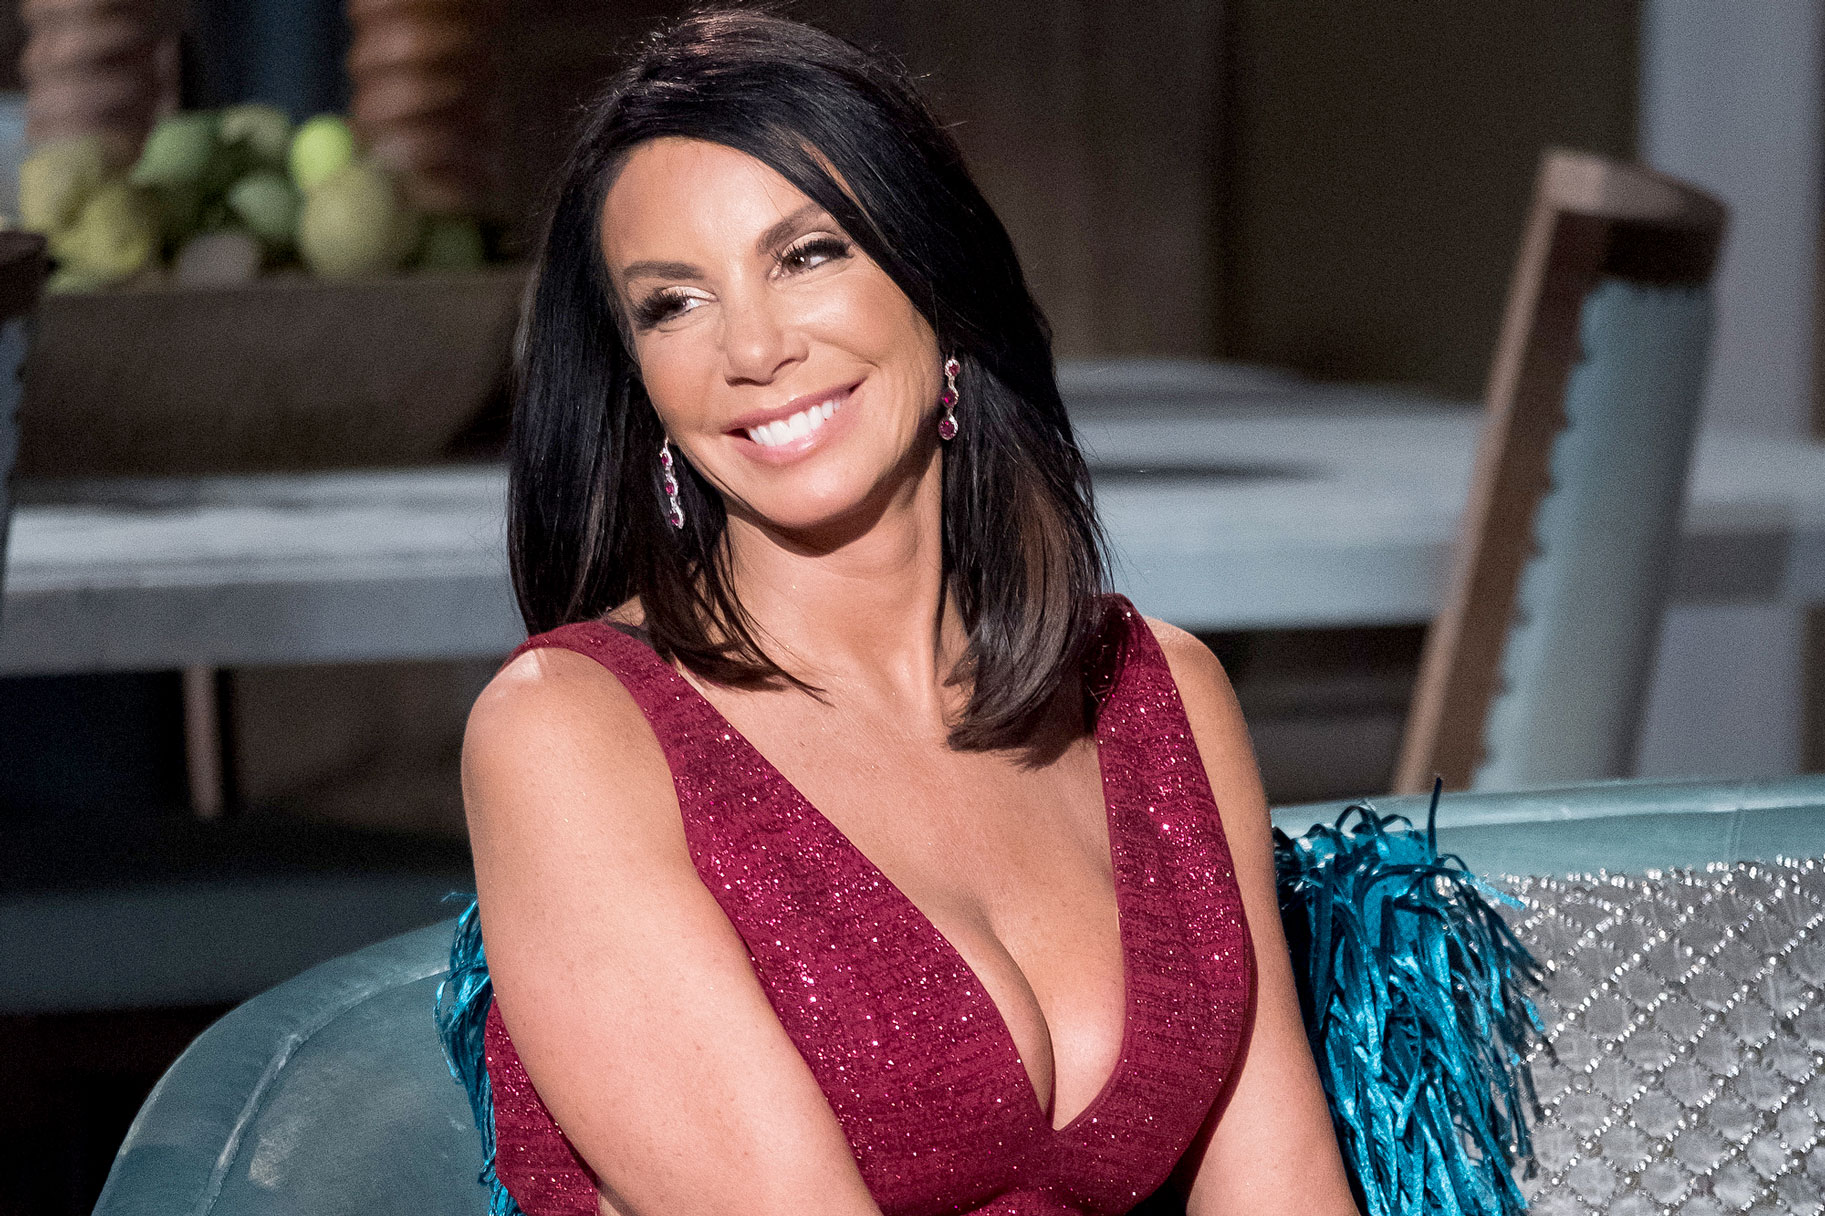 dish-danielle-staub-dutchess-engaged